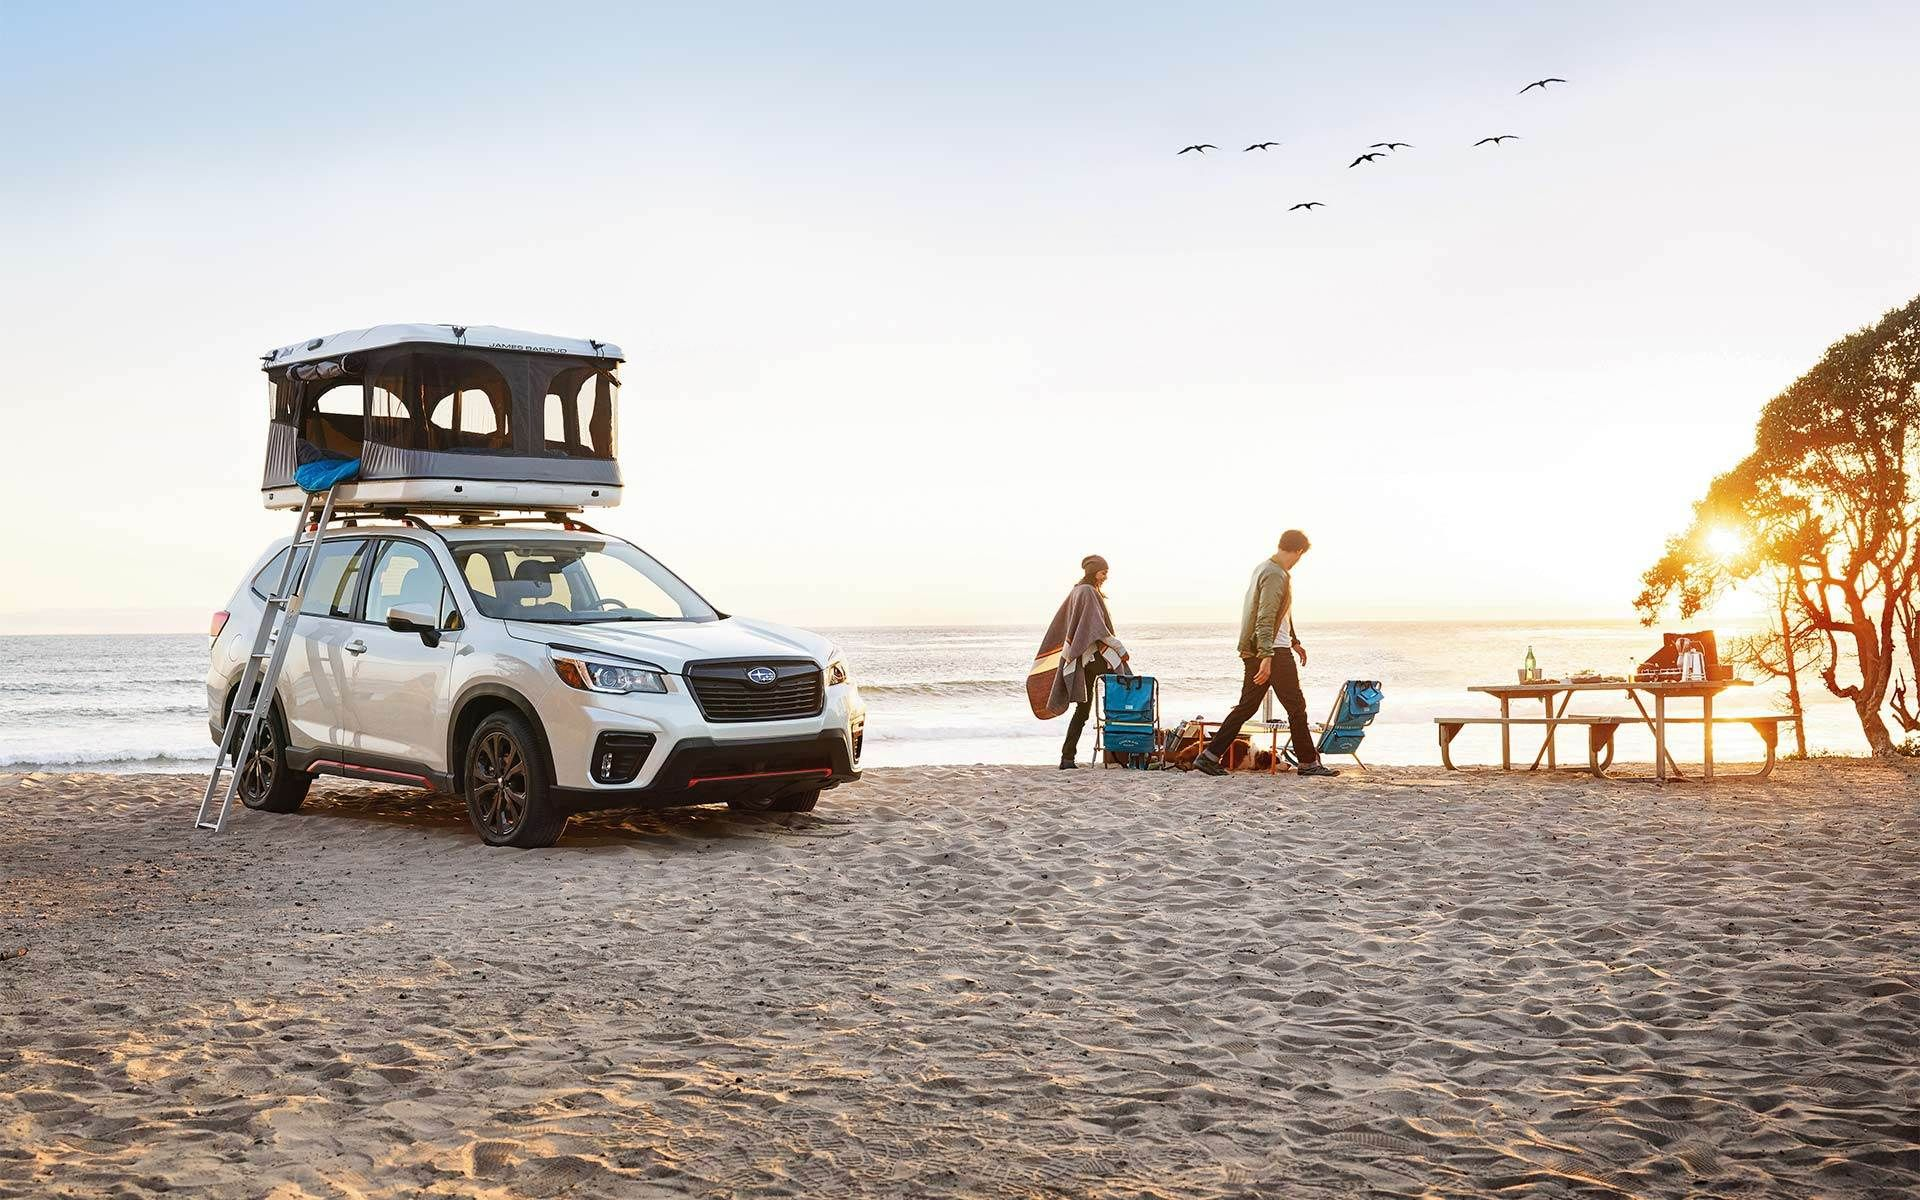 2020 Subaru Forester In 2020 Subaru Forester Subaru Subaru Outback